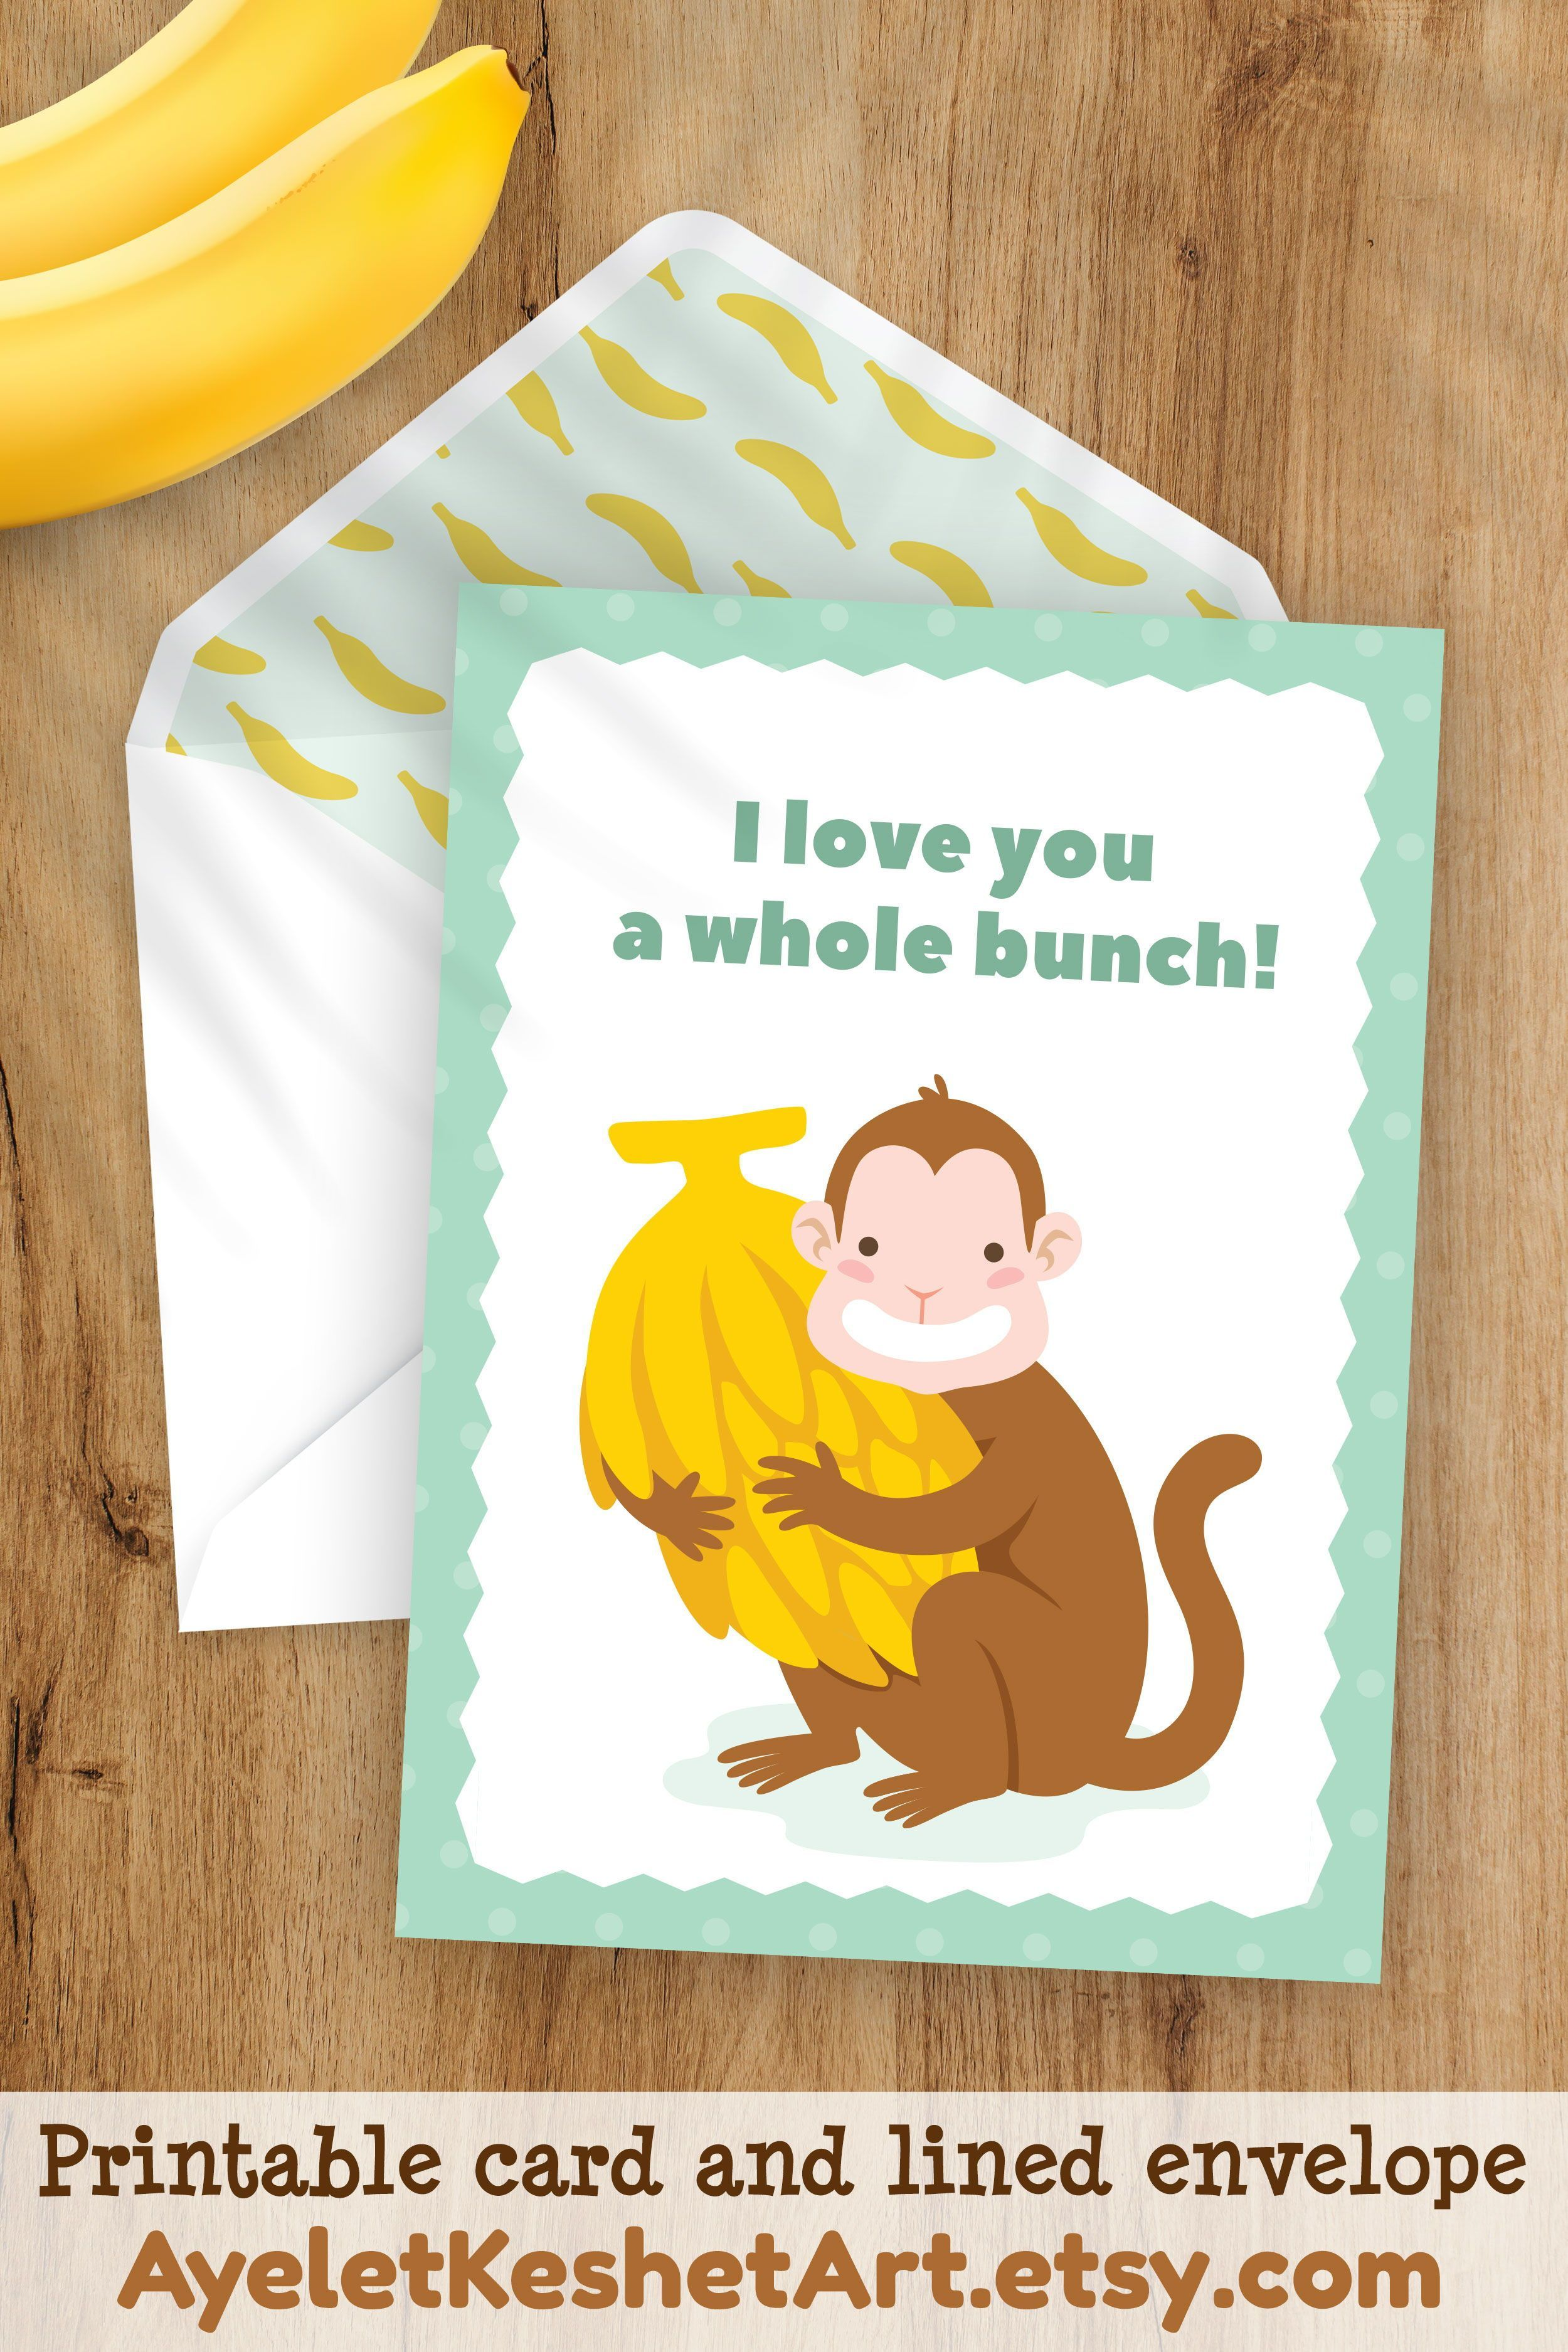 Printable Card Lined Envelope Valentine S Day Anniversary Card I Love You A Whole Bunch Greeting Card Digital Instant Download In 2021 Printable Cards Cards Anniversary Cards